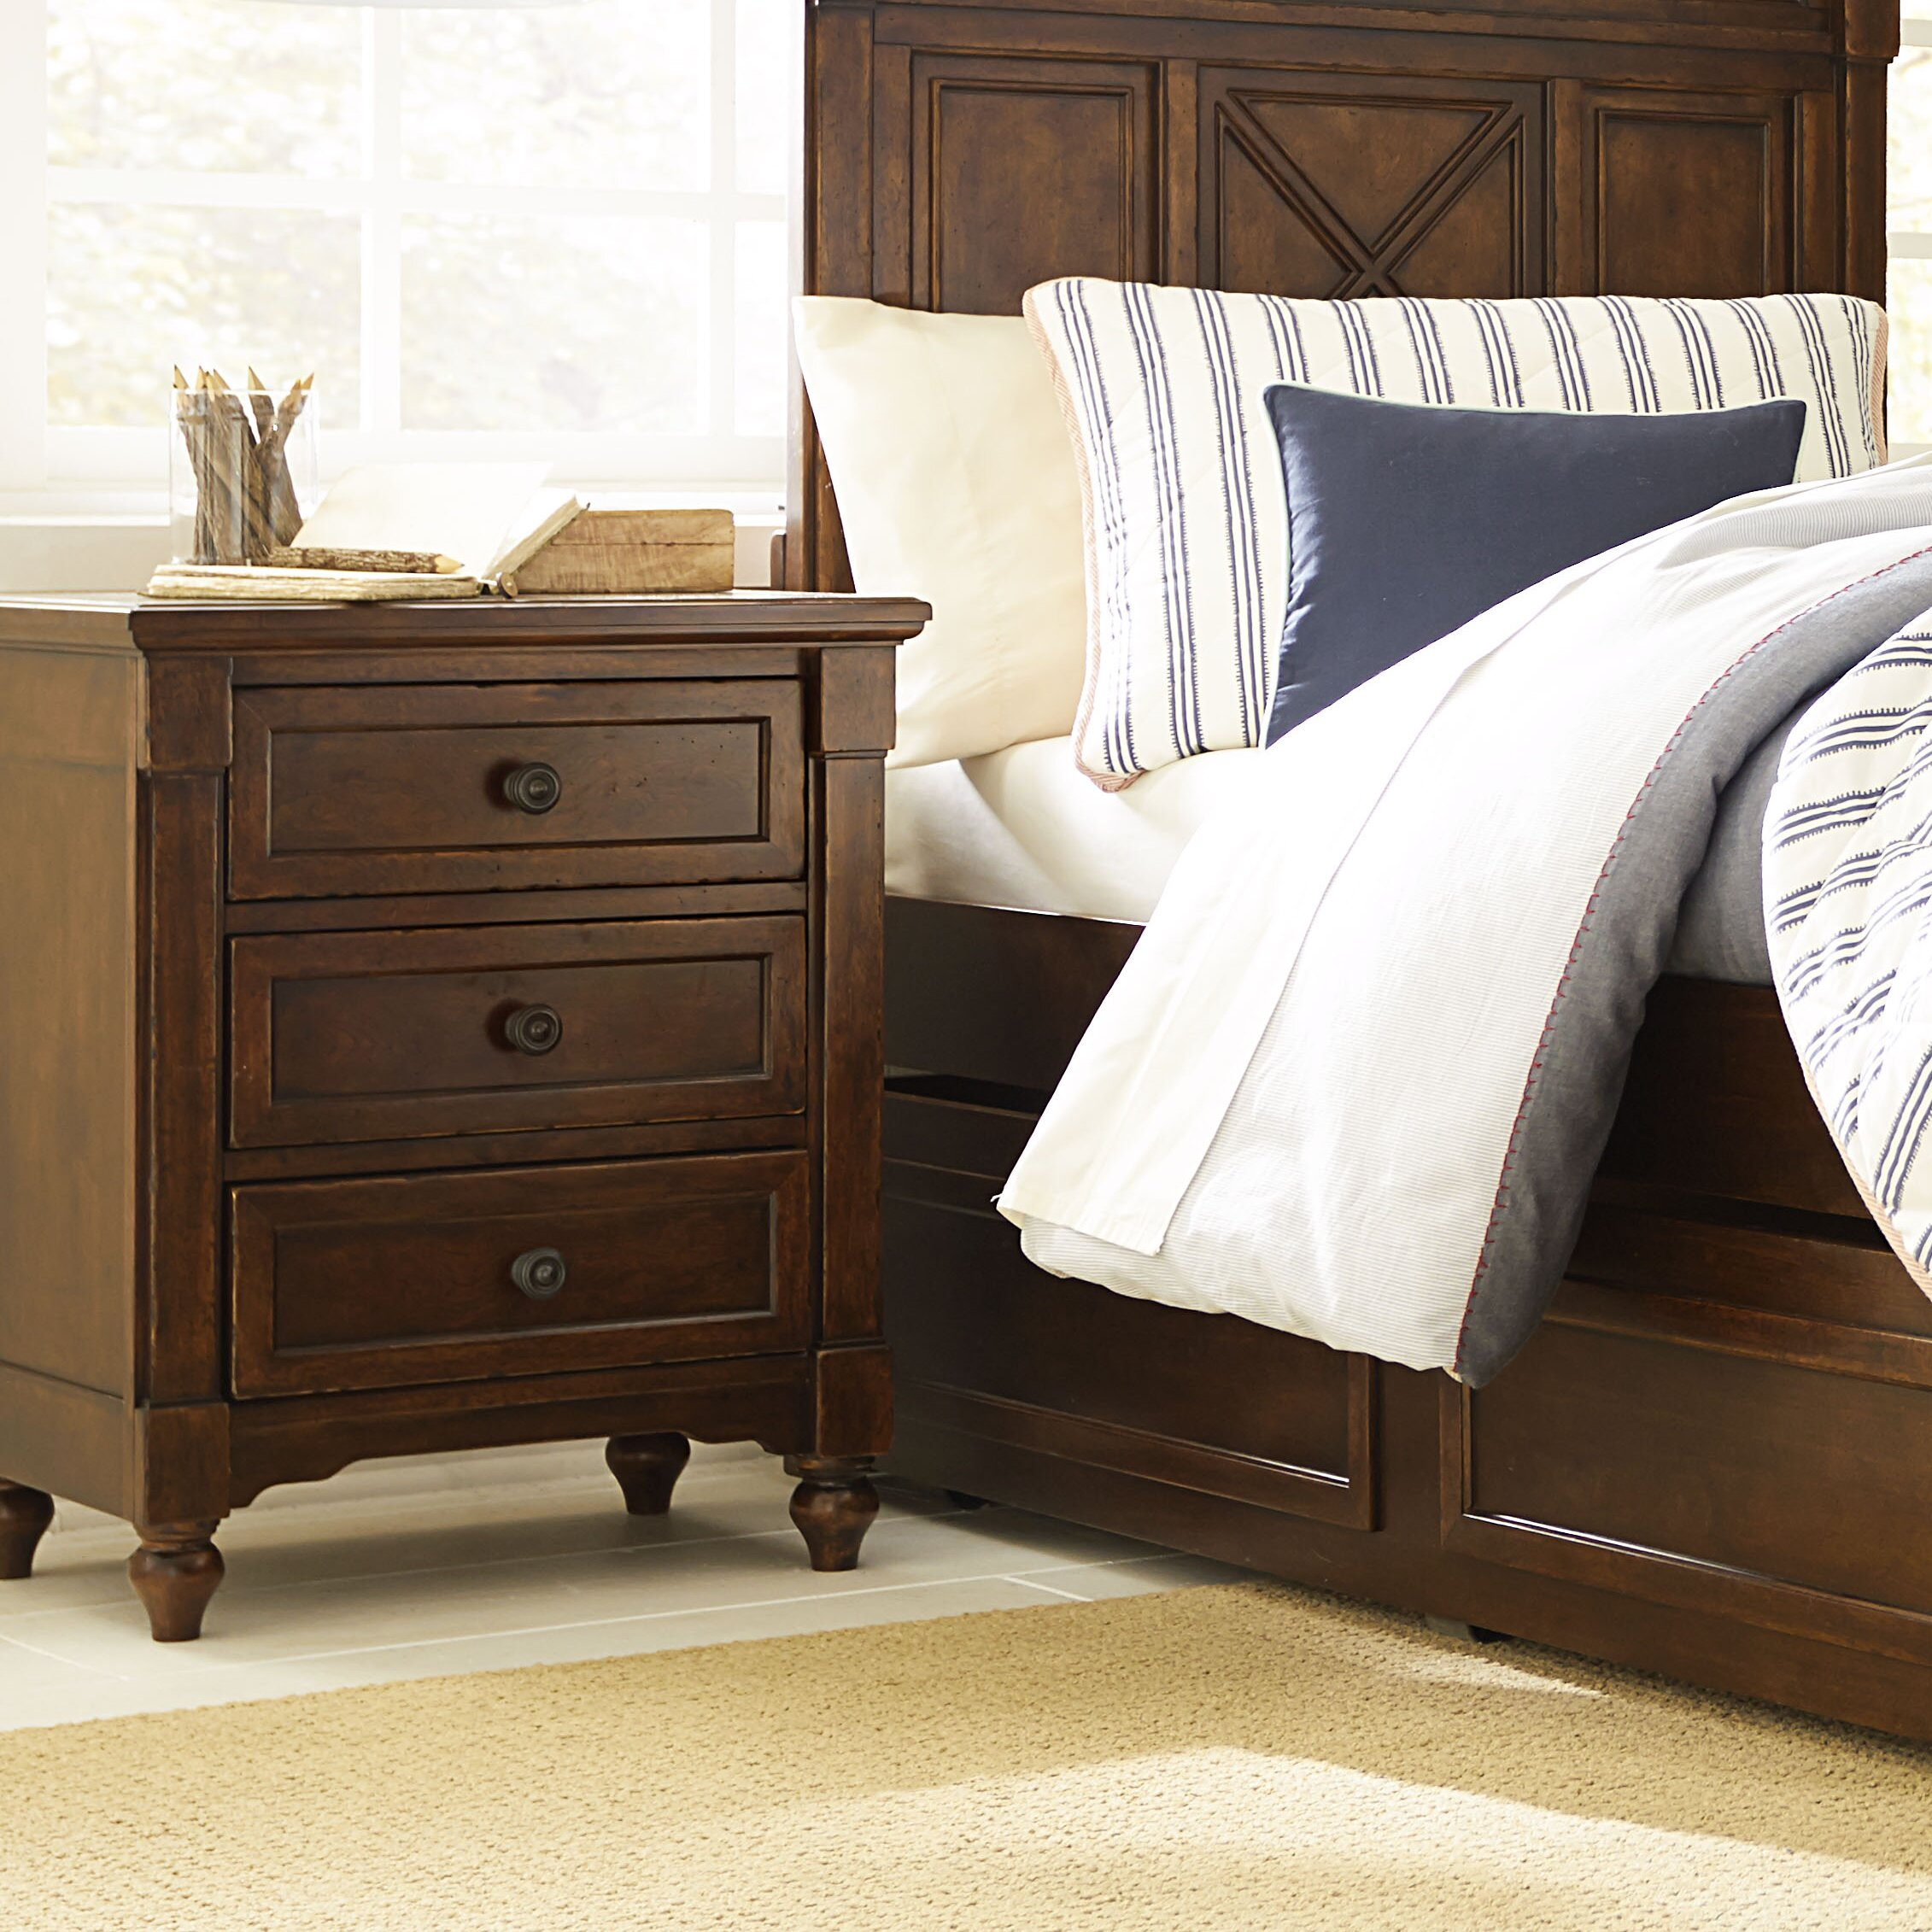 Bellissimo Bedroom Set: LC Kids Big Sur By Wendy Bellissimo Twin Panel